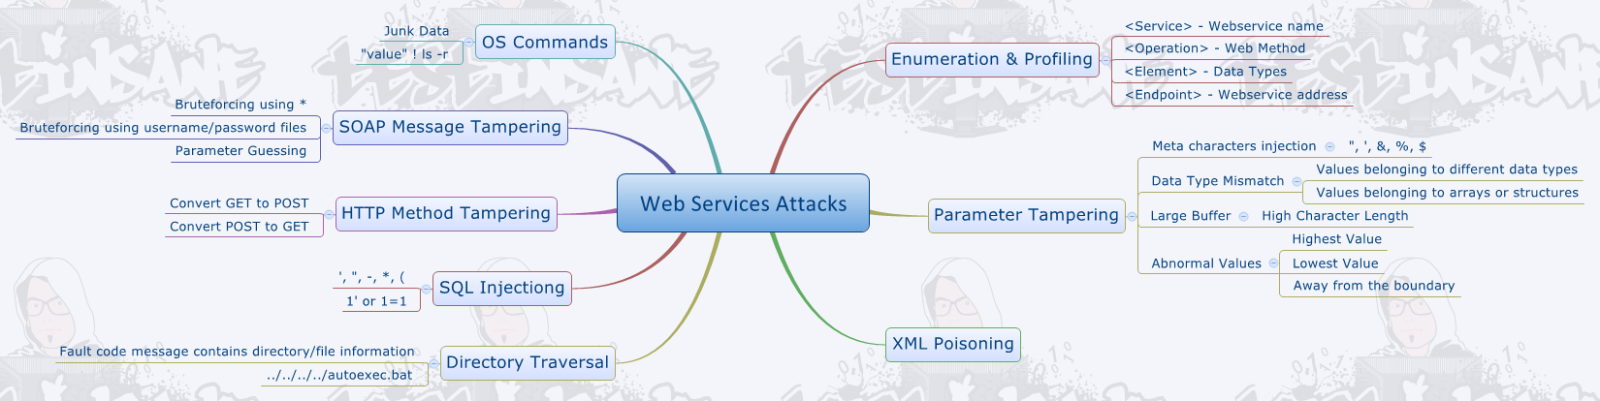 Web Services Attacks